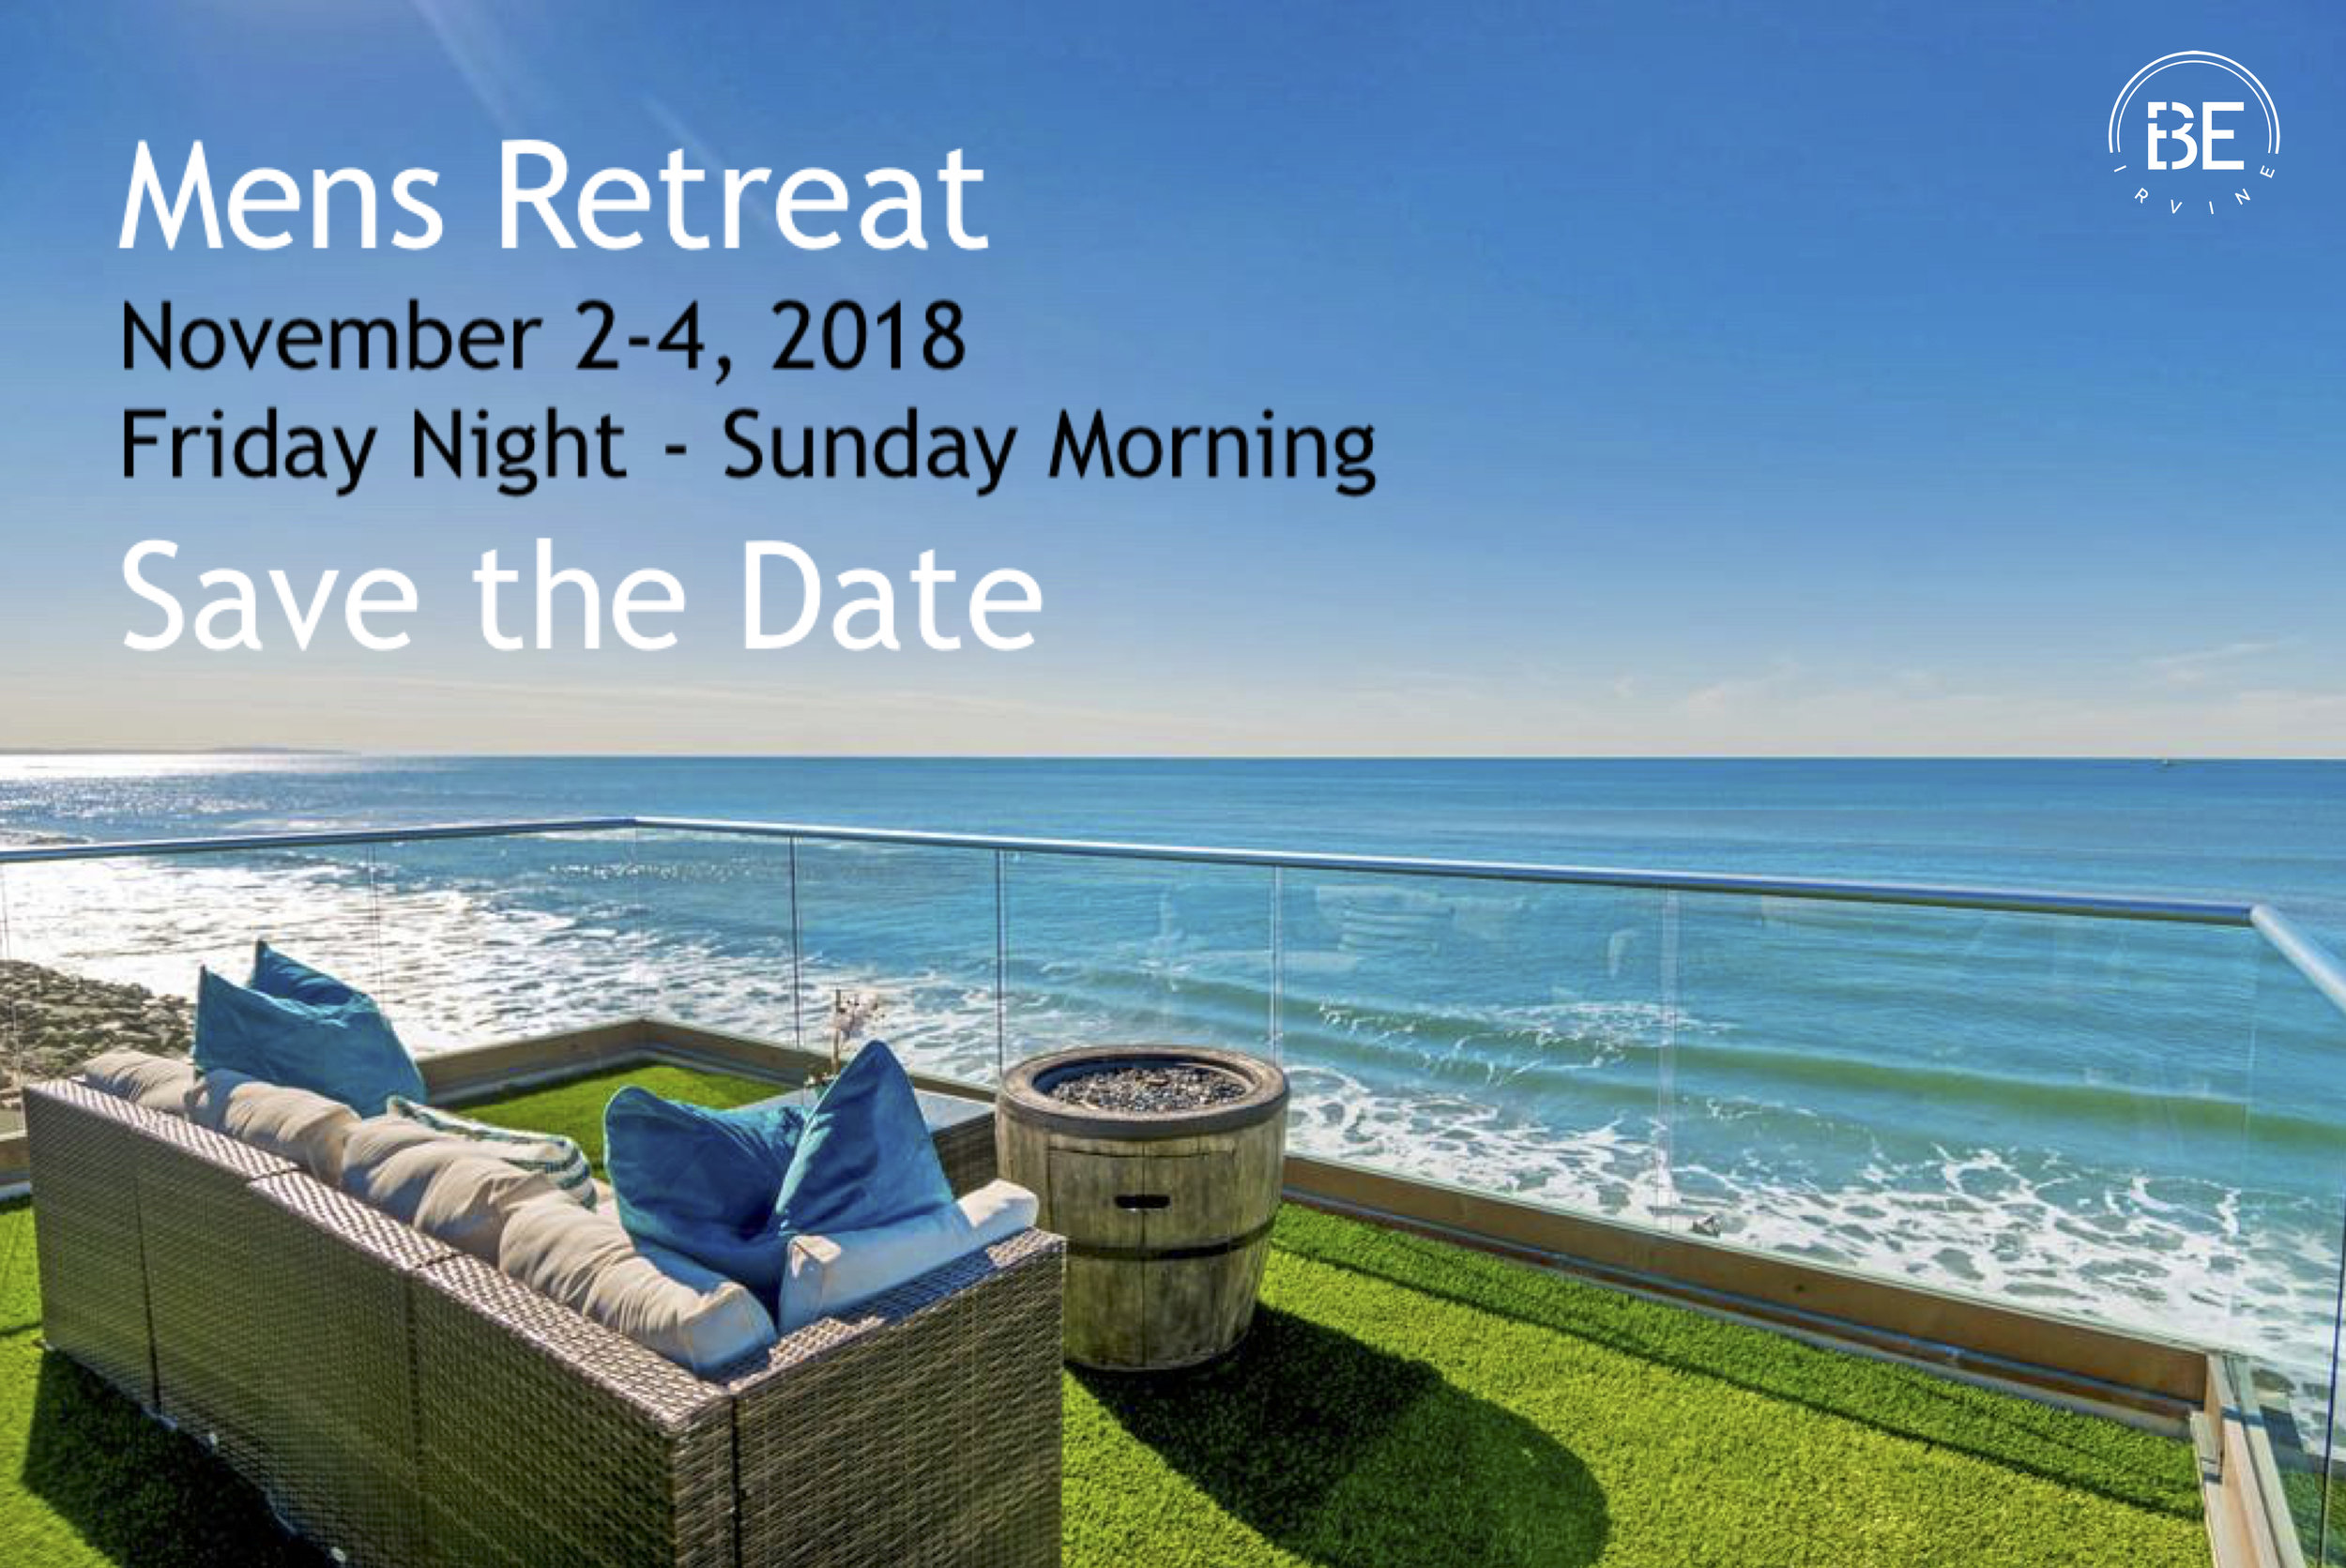 Mens Retreat Save the Date.jpg